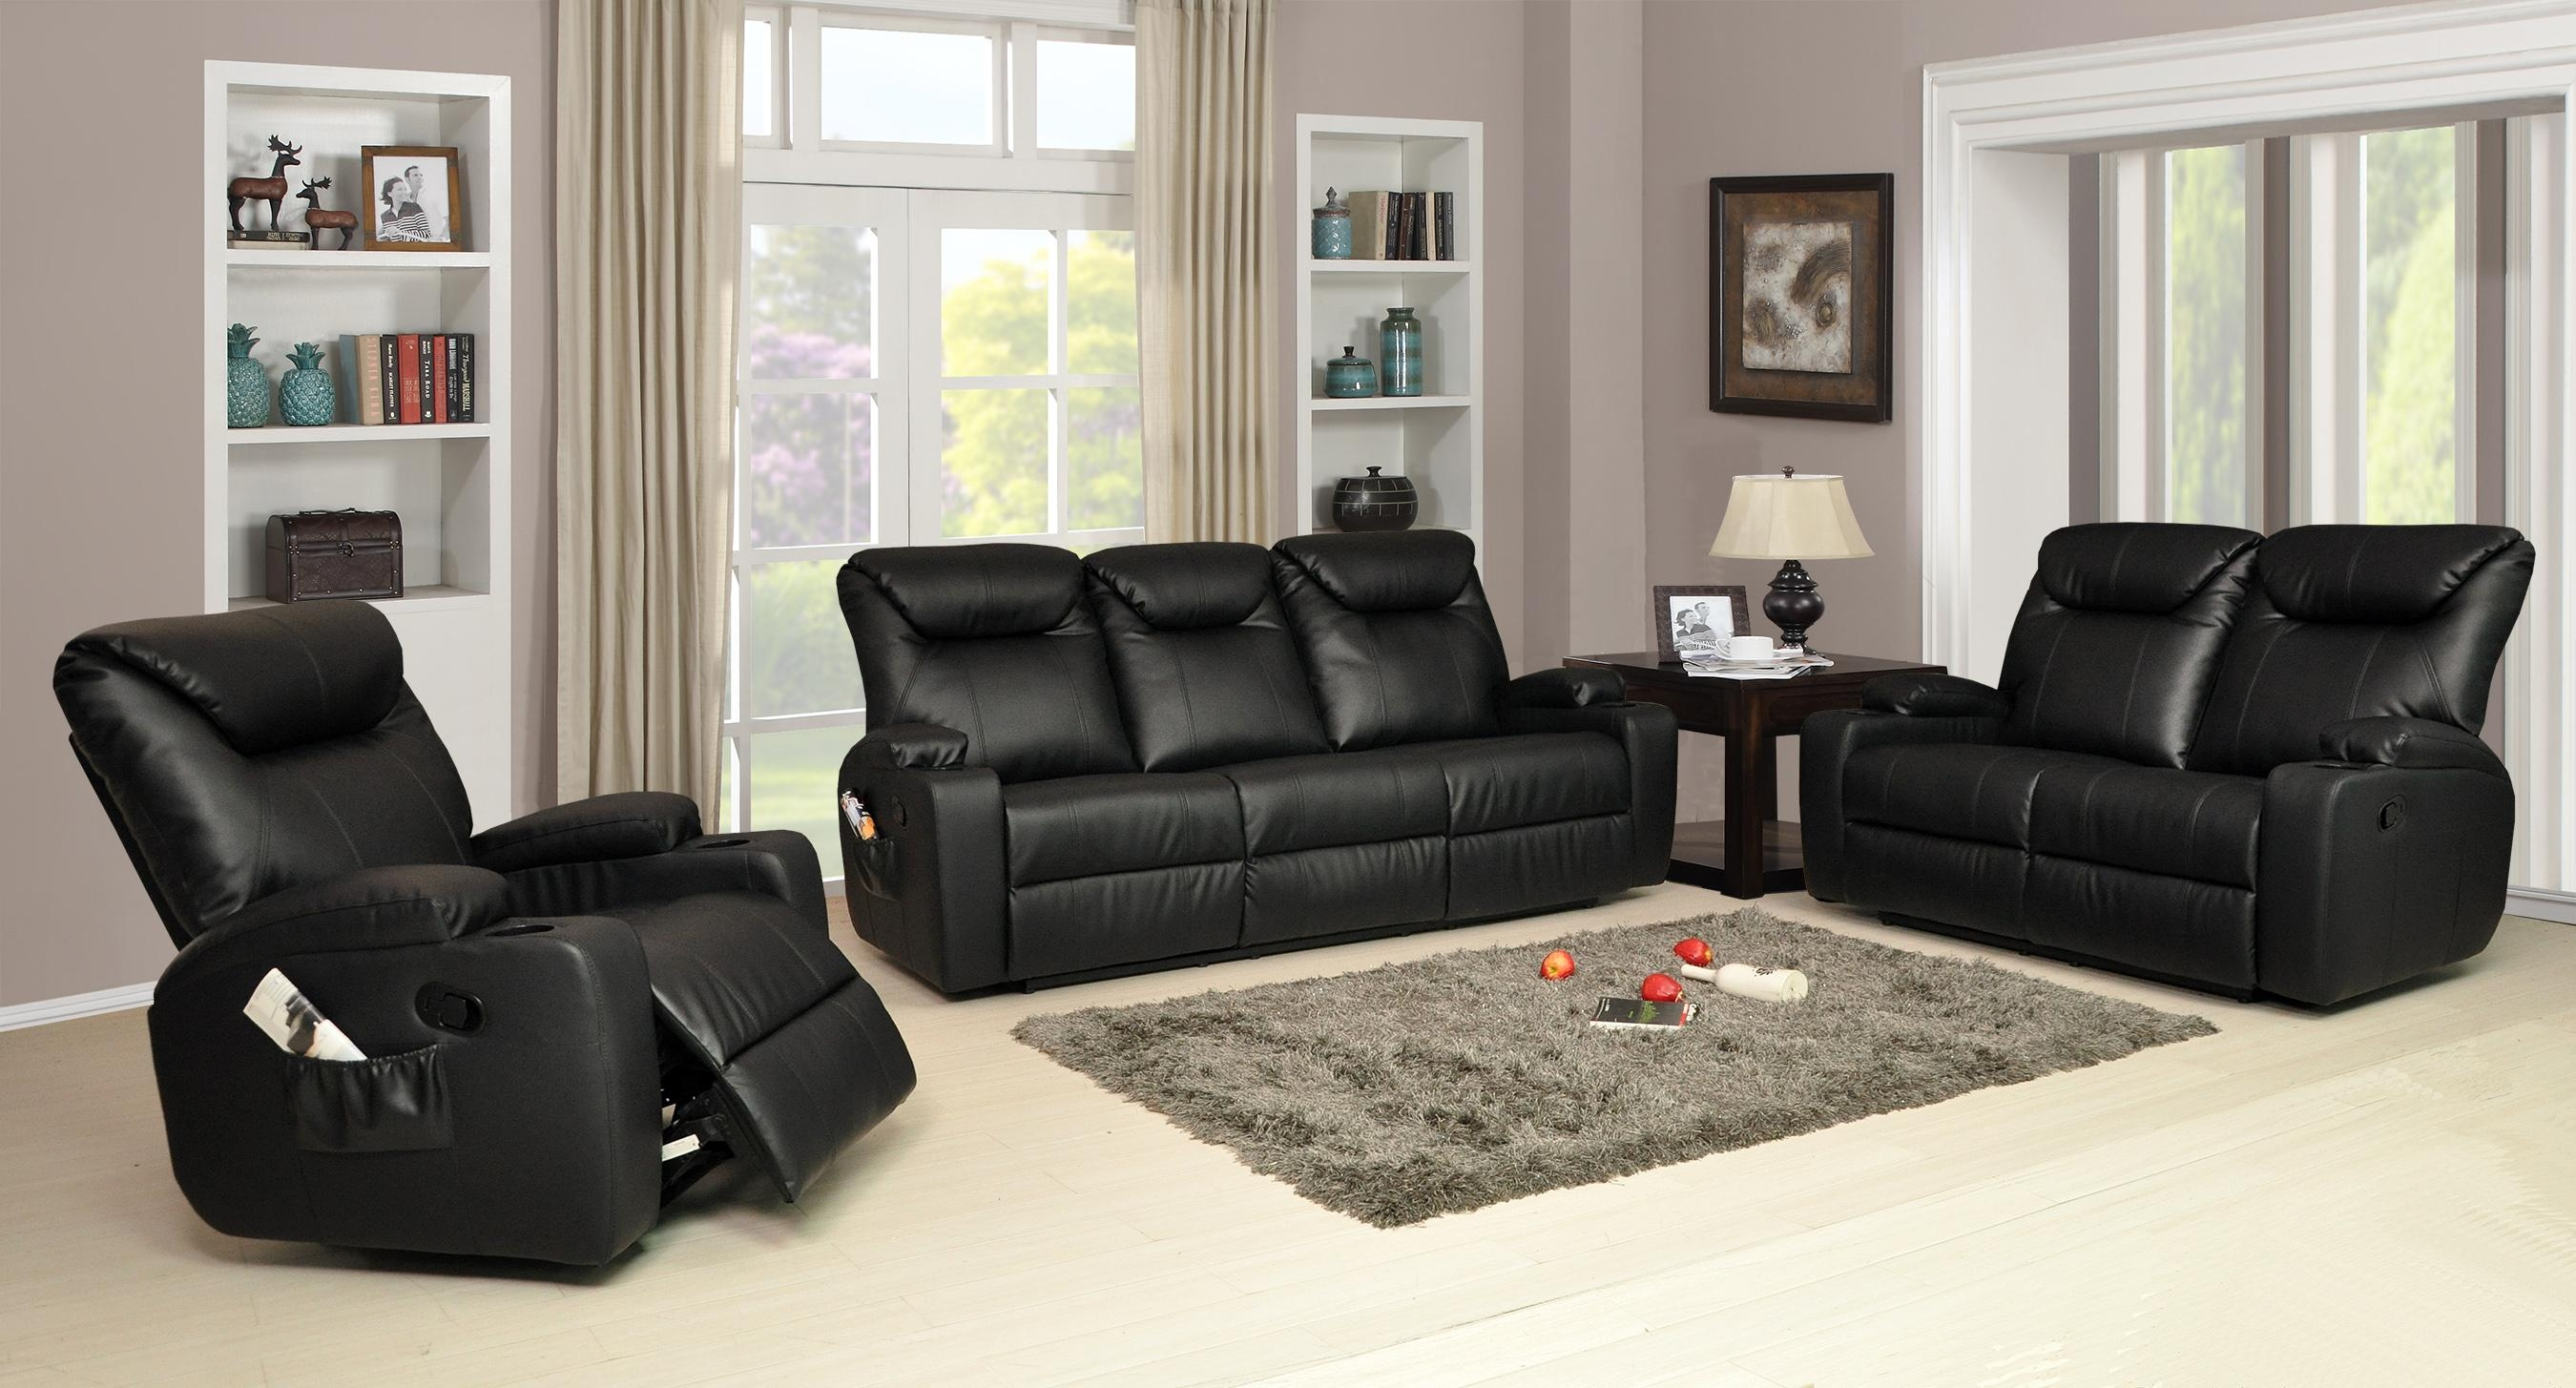 Sofas Center : Lazy Boy Sofas And Loveseats Sets For Small Spaces For Lazy Boy Sofas (View 10 of 20)